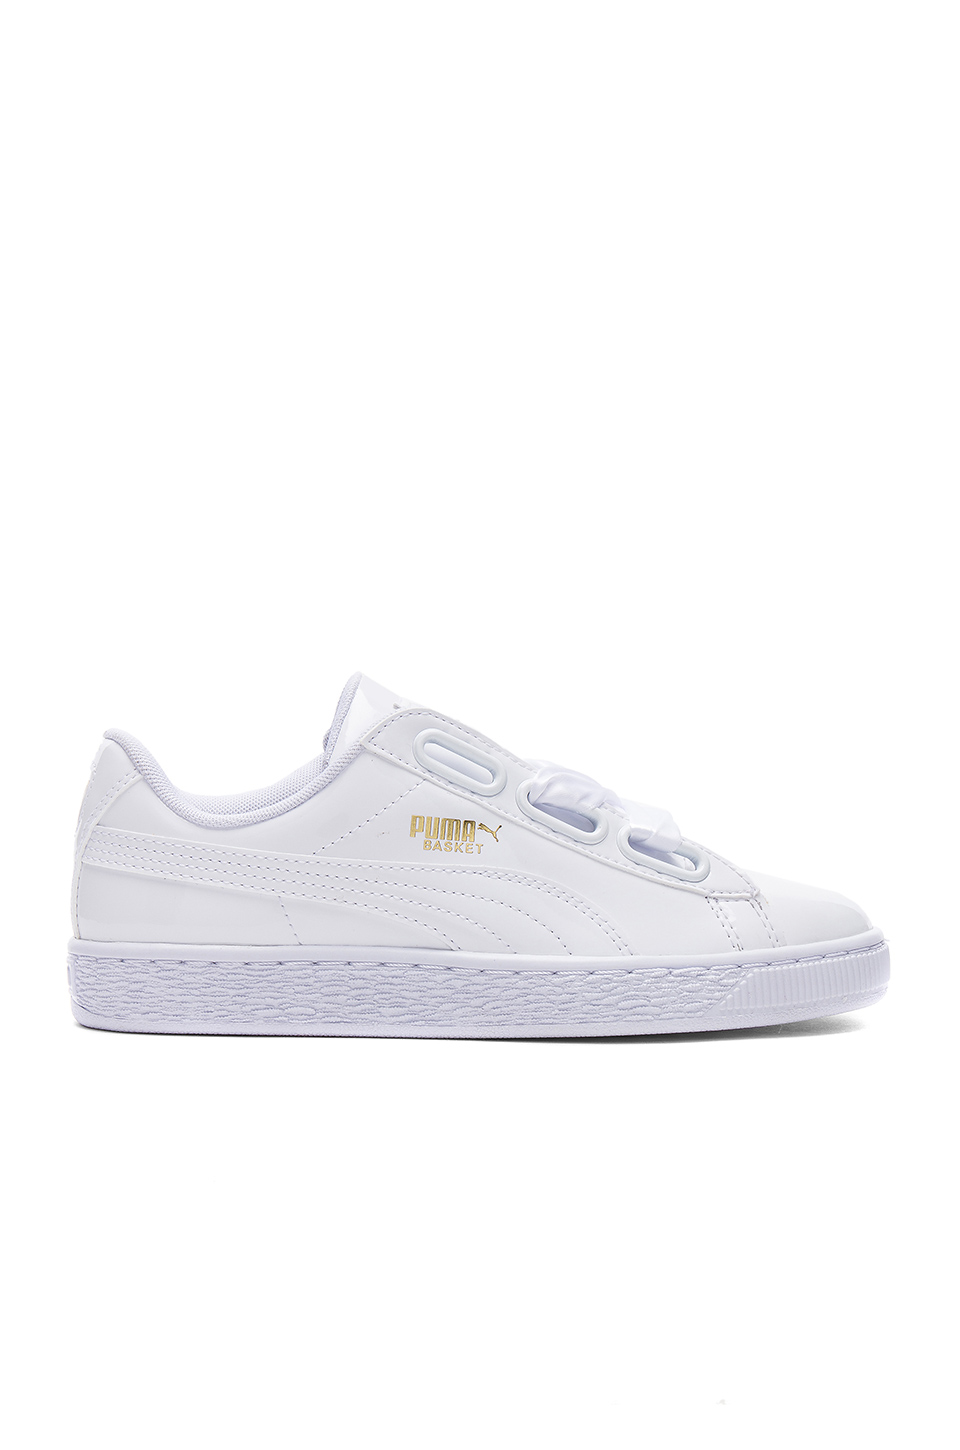 PUMA Basket Patent Leather Lace Up Sneakers at REVOLVE